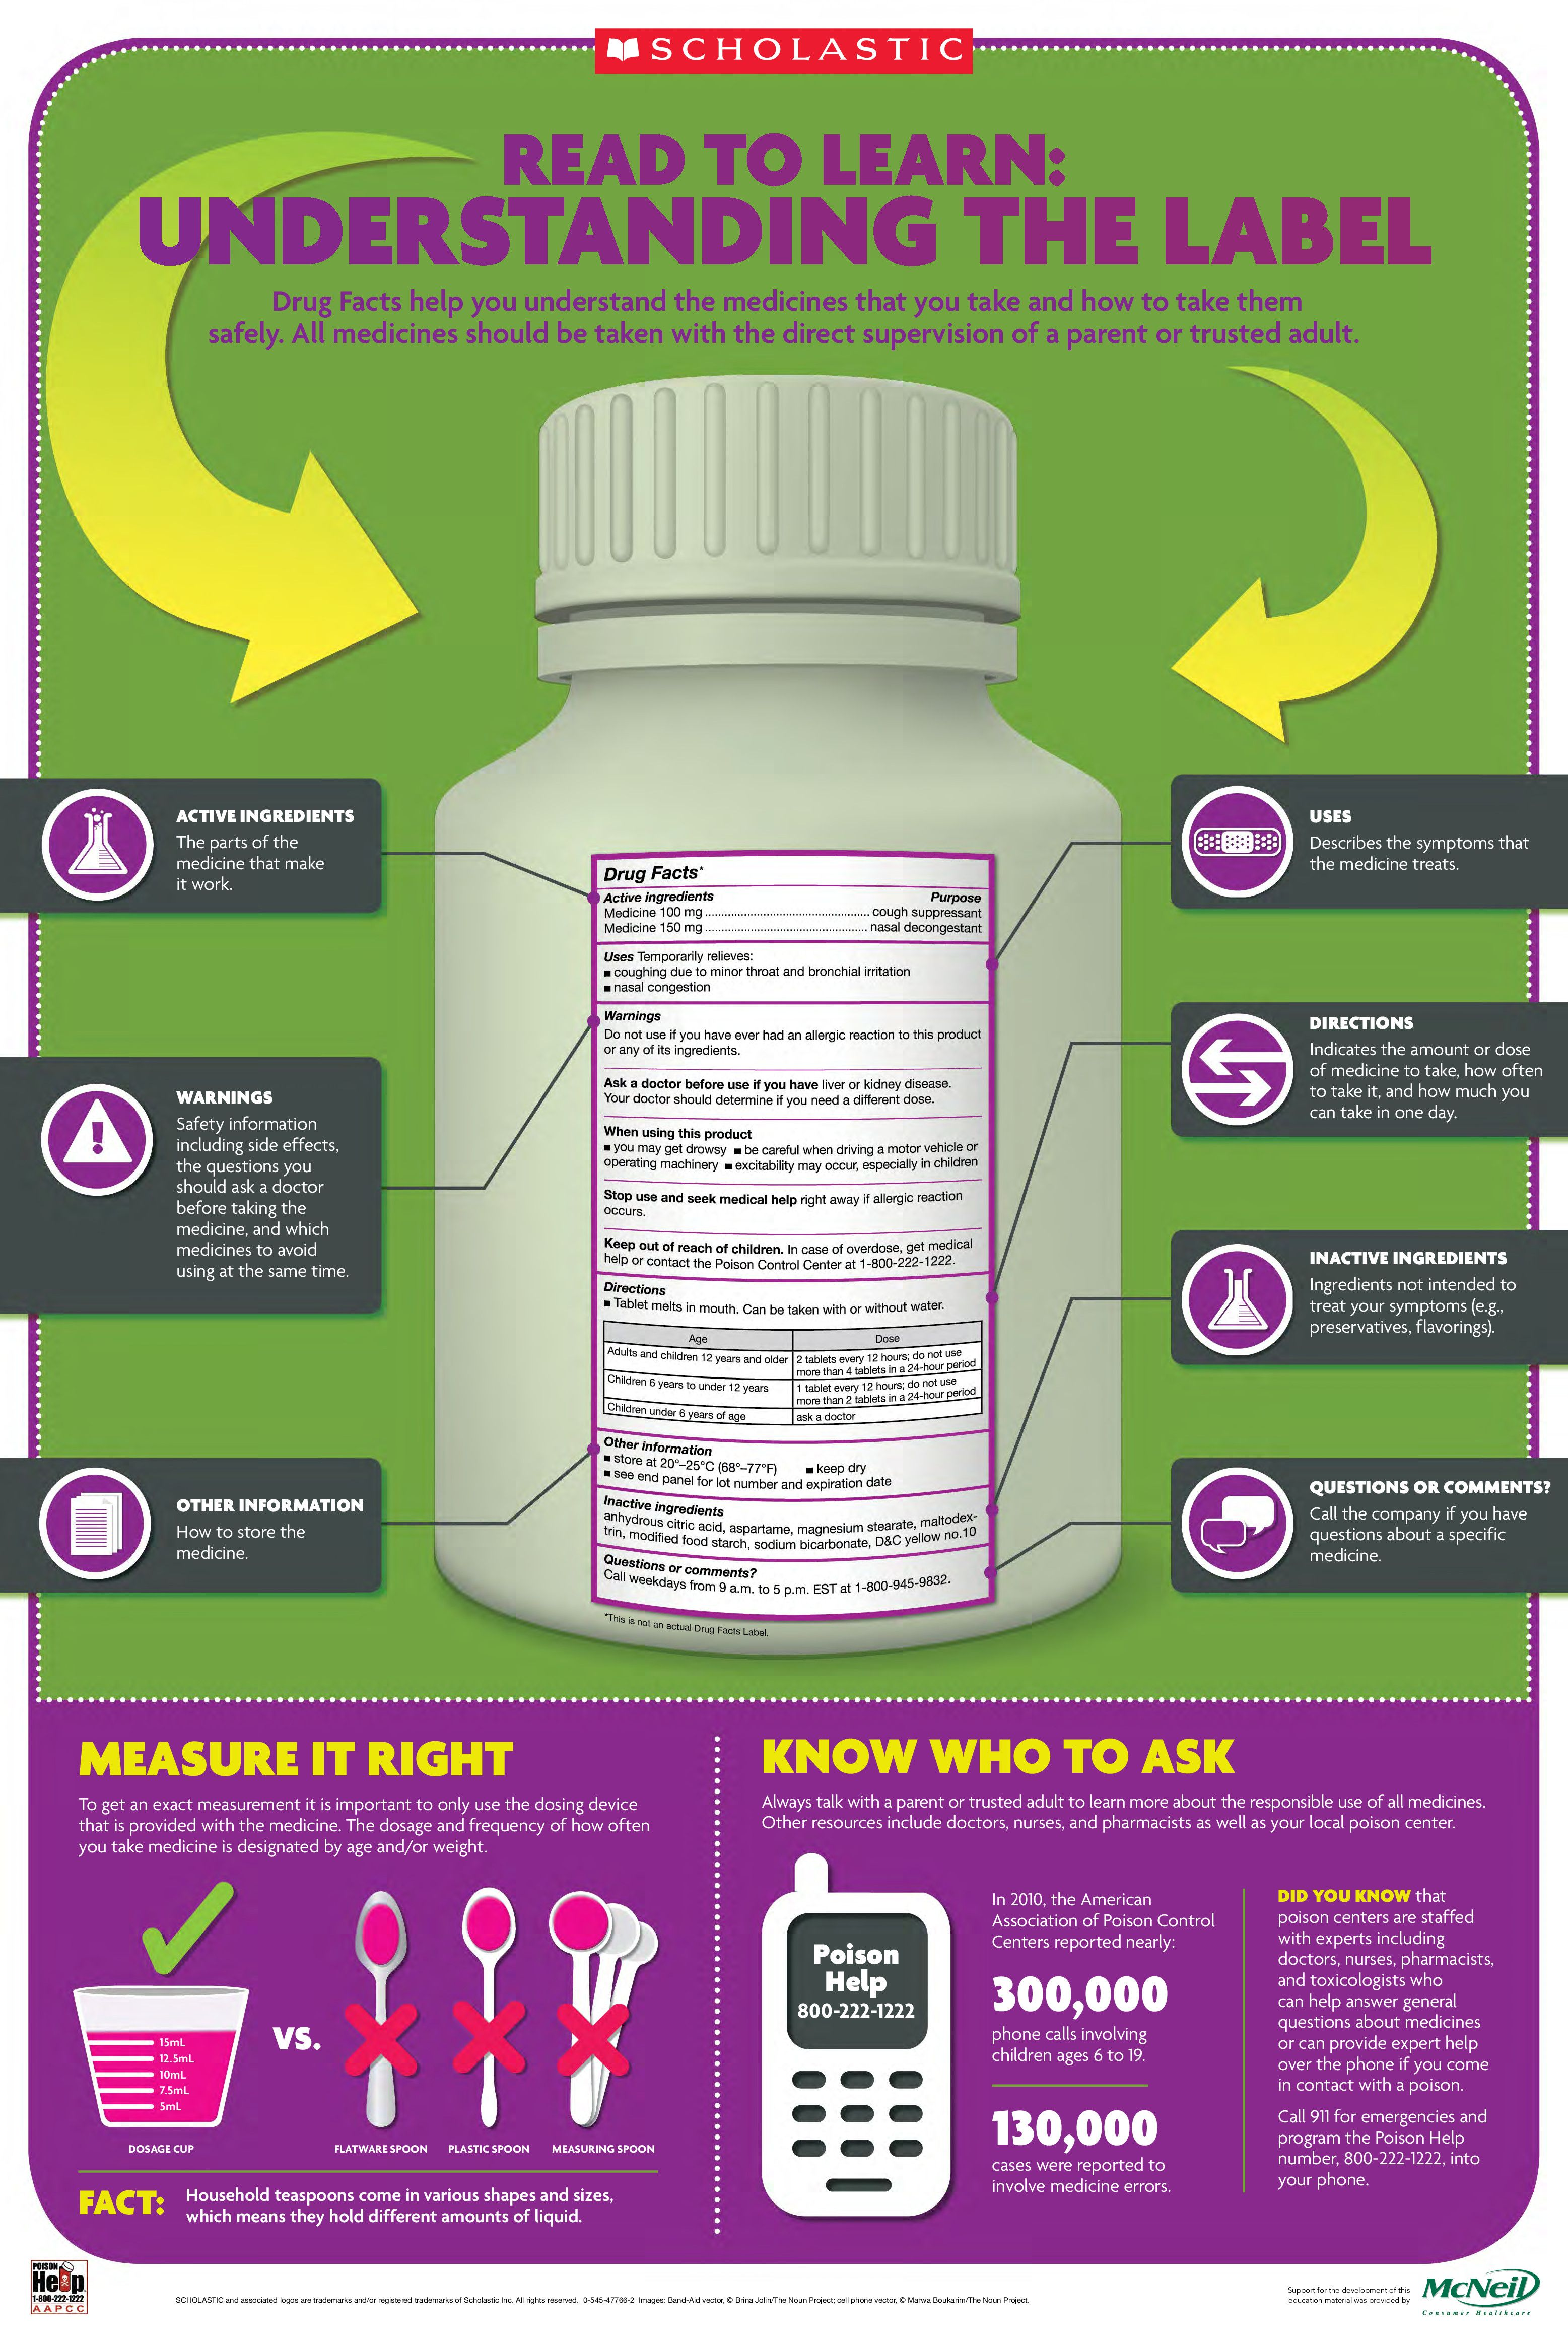 The American Association Of Poison Control Centers And